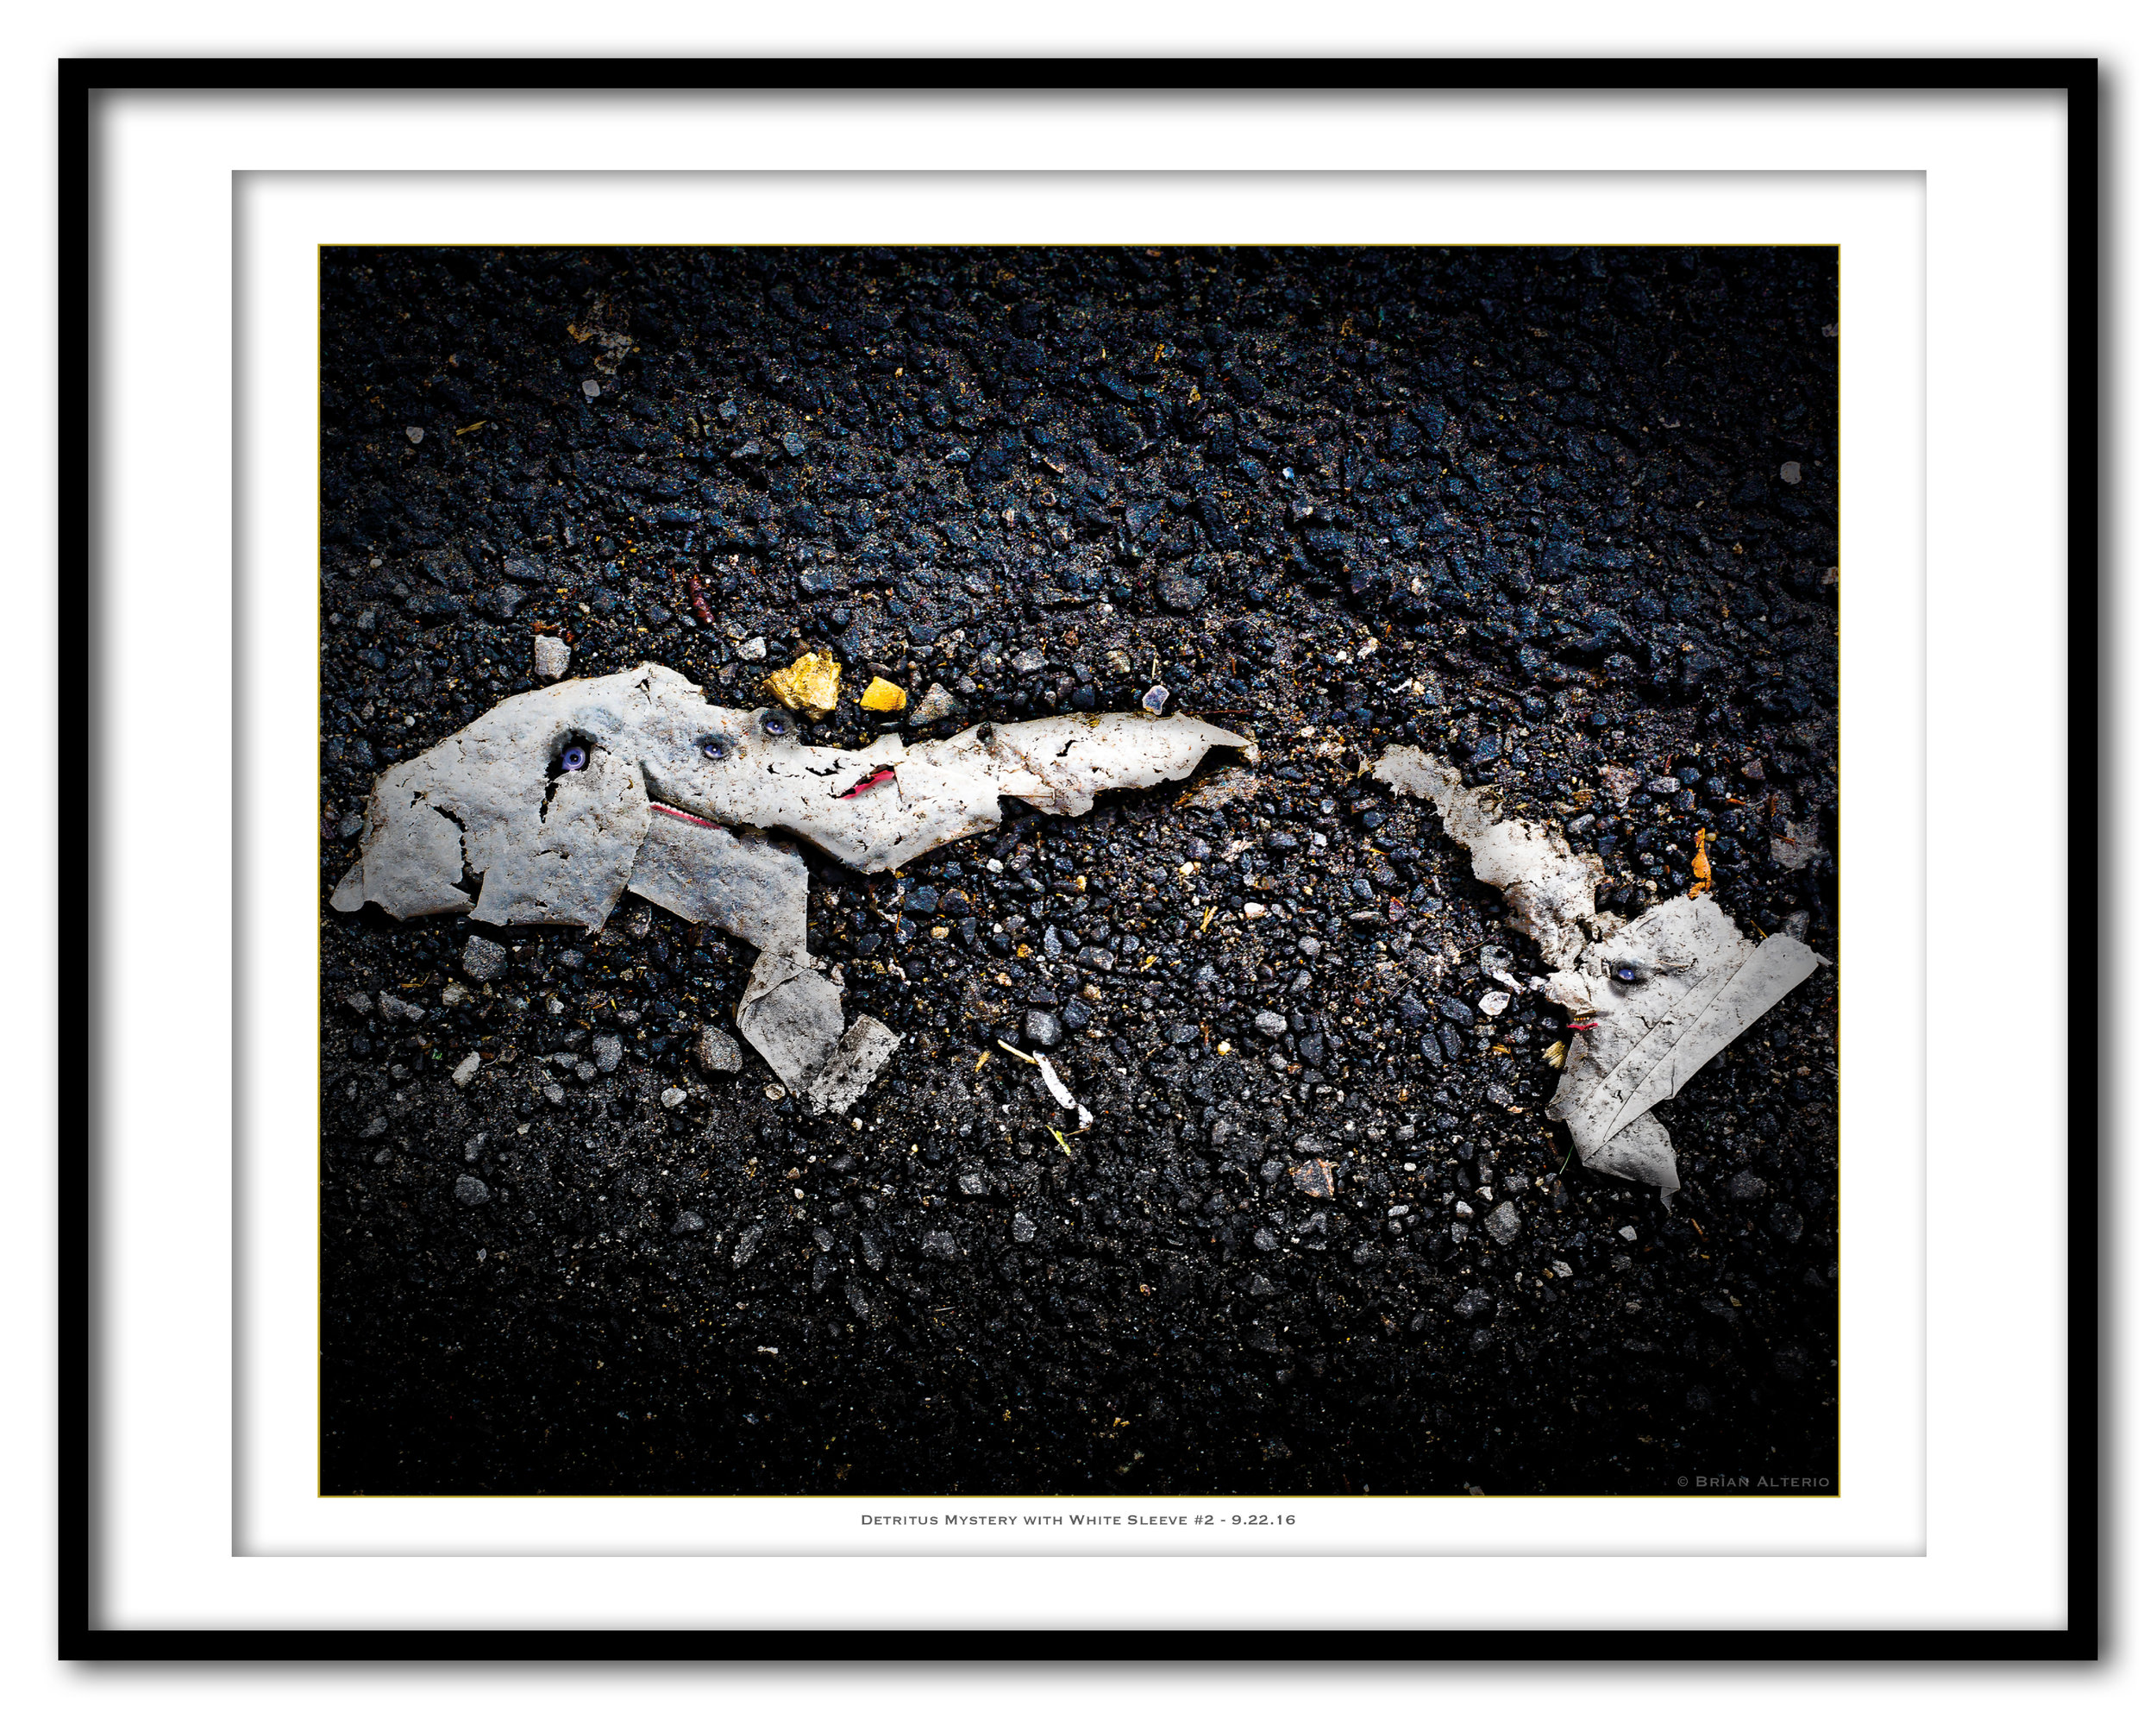 Detritus Mystery with White Sleeve #2 - 9.22.16 - Framed.jpg